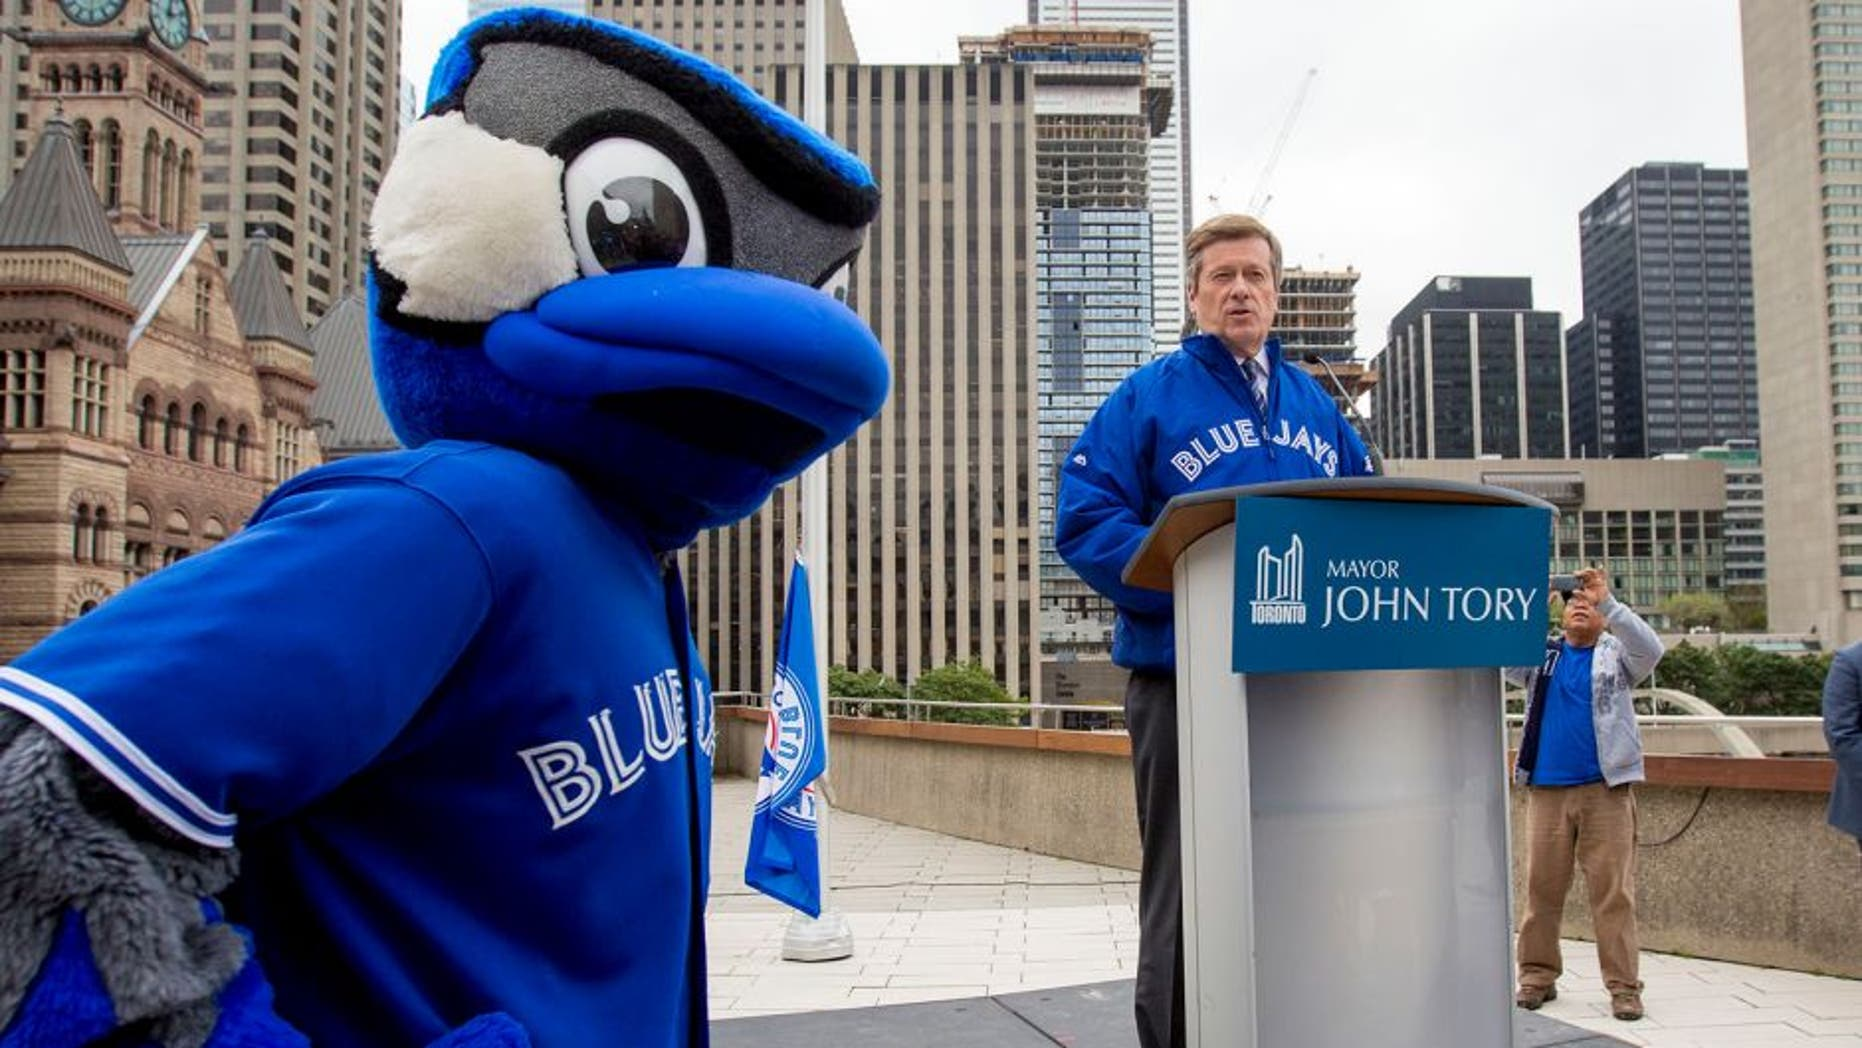 TORONTO, ON - OCTOBER 6 - Toronto Mayor John Tory held a special flag raising for the Toronto Blue Jays to kick of the 2015 post season. October 6, 2015. (Carlos Osorio/Toronto Star via Getty Images)